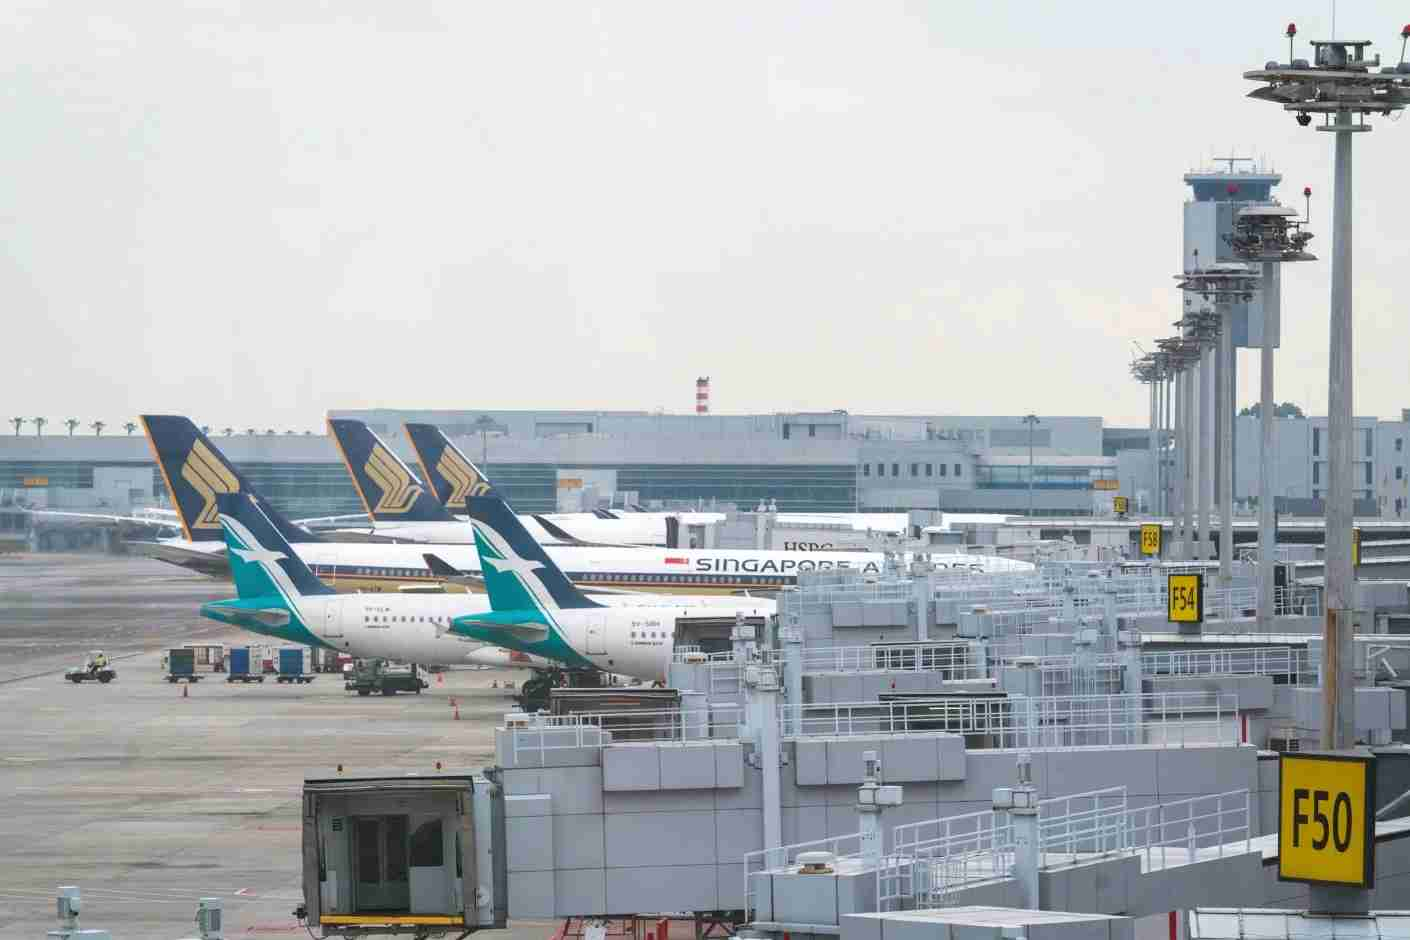 Singapore Airlines Ltd. and SilkAir Singapore Pte aircraft stand on the tarmac at Changi Airport in Singapore, on Thursday, Dec. 13, 2018. Singapore